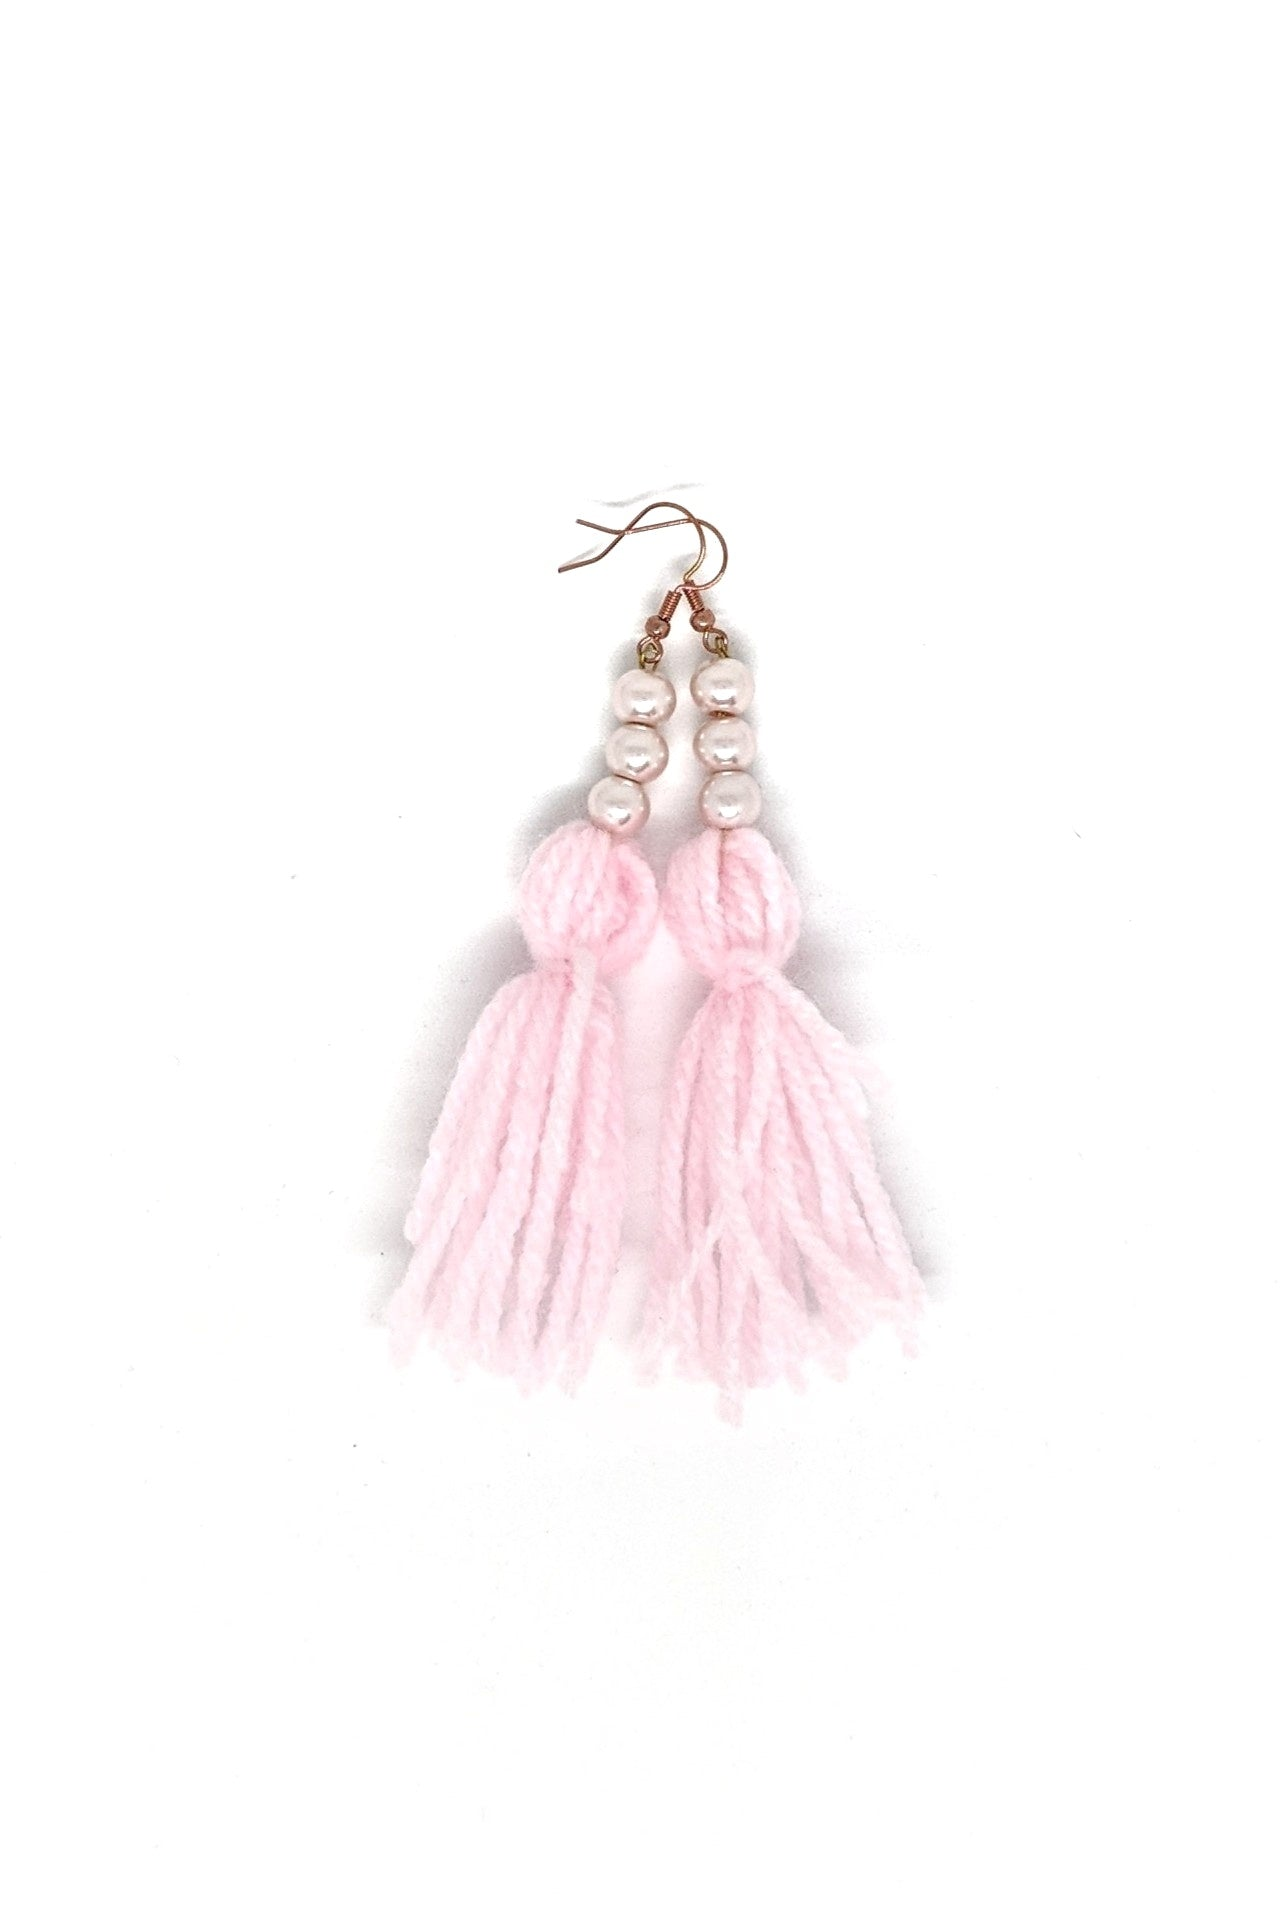 PINK YARN TASSLE EARRINGS